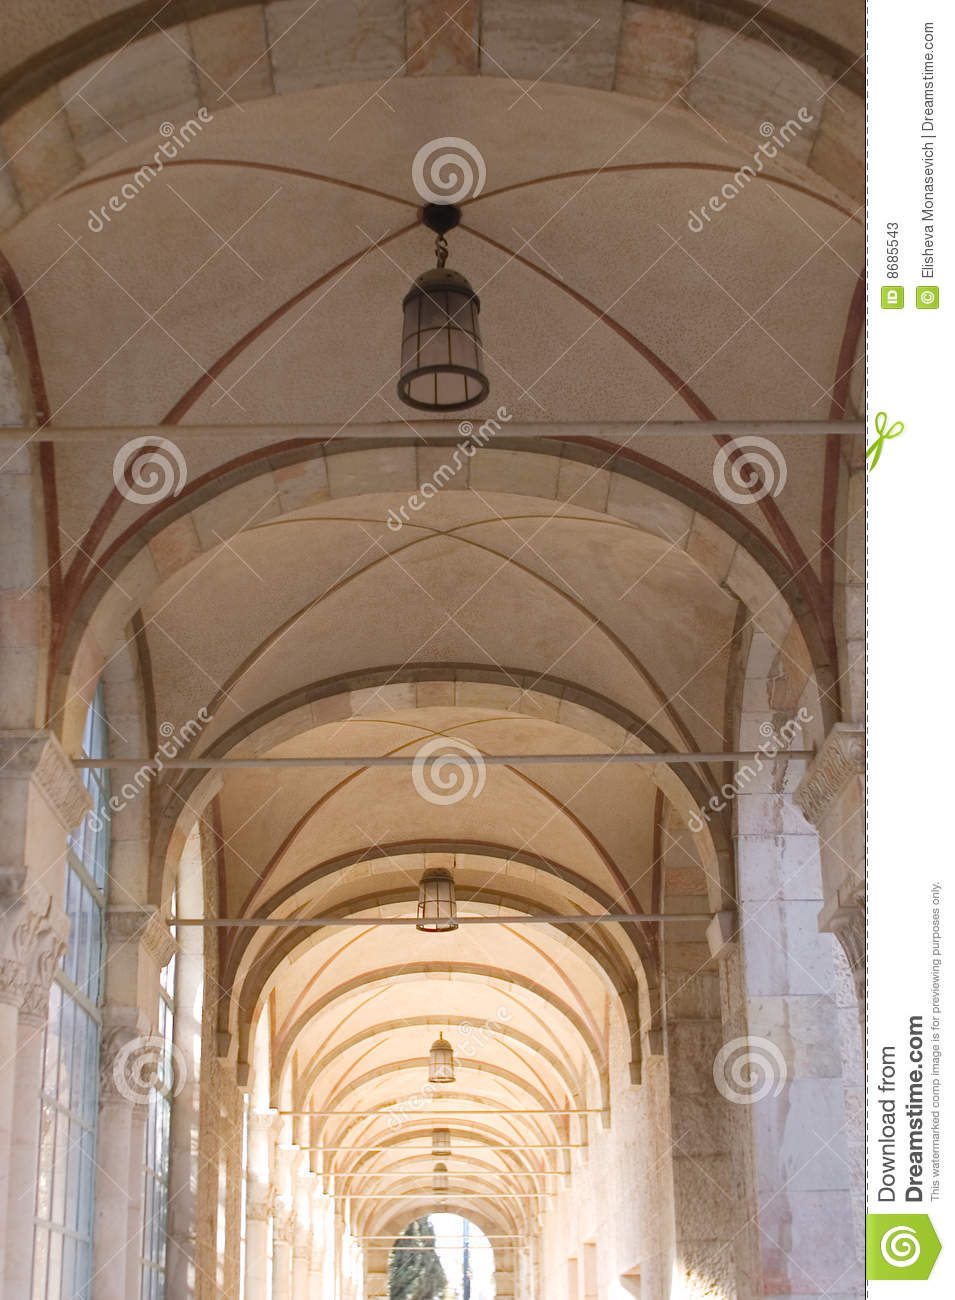 Ceiling Of Arch Corridor Stock Photos Image 8685543